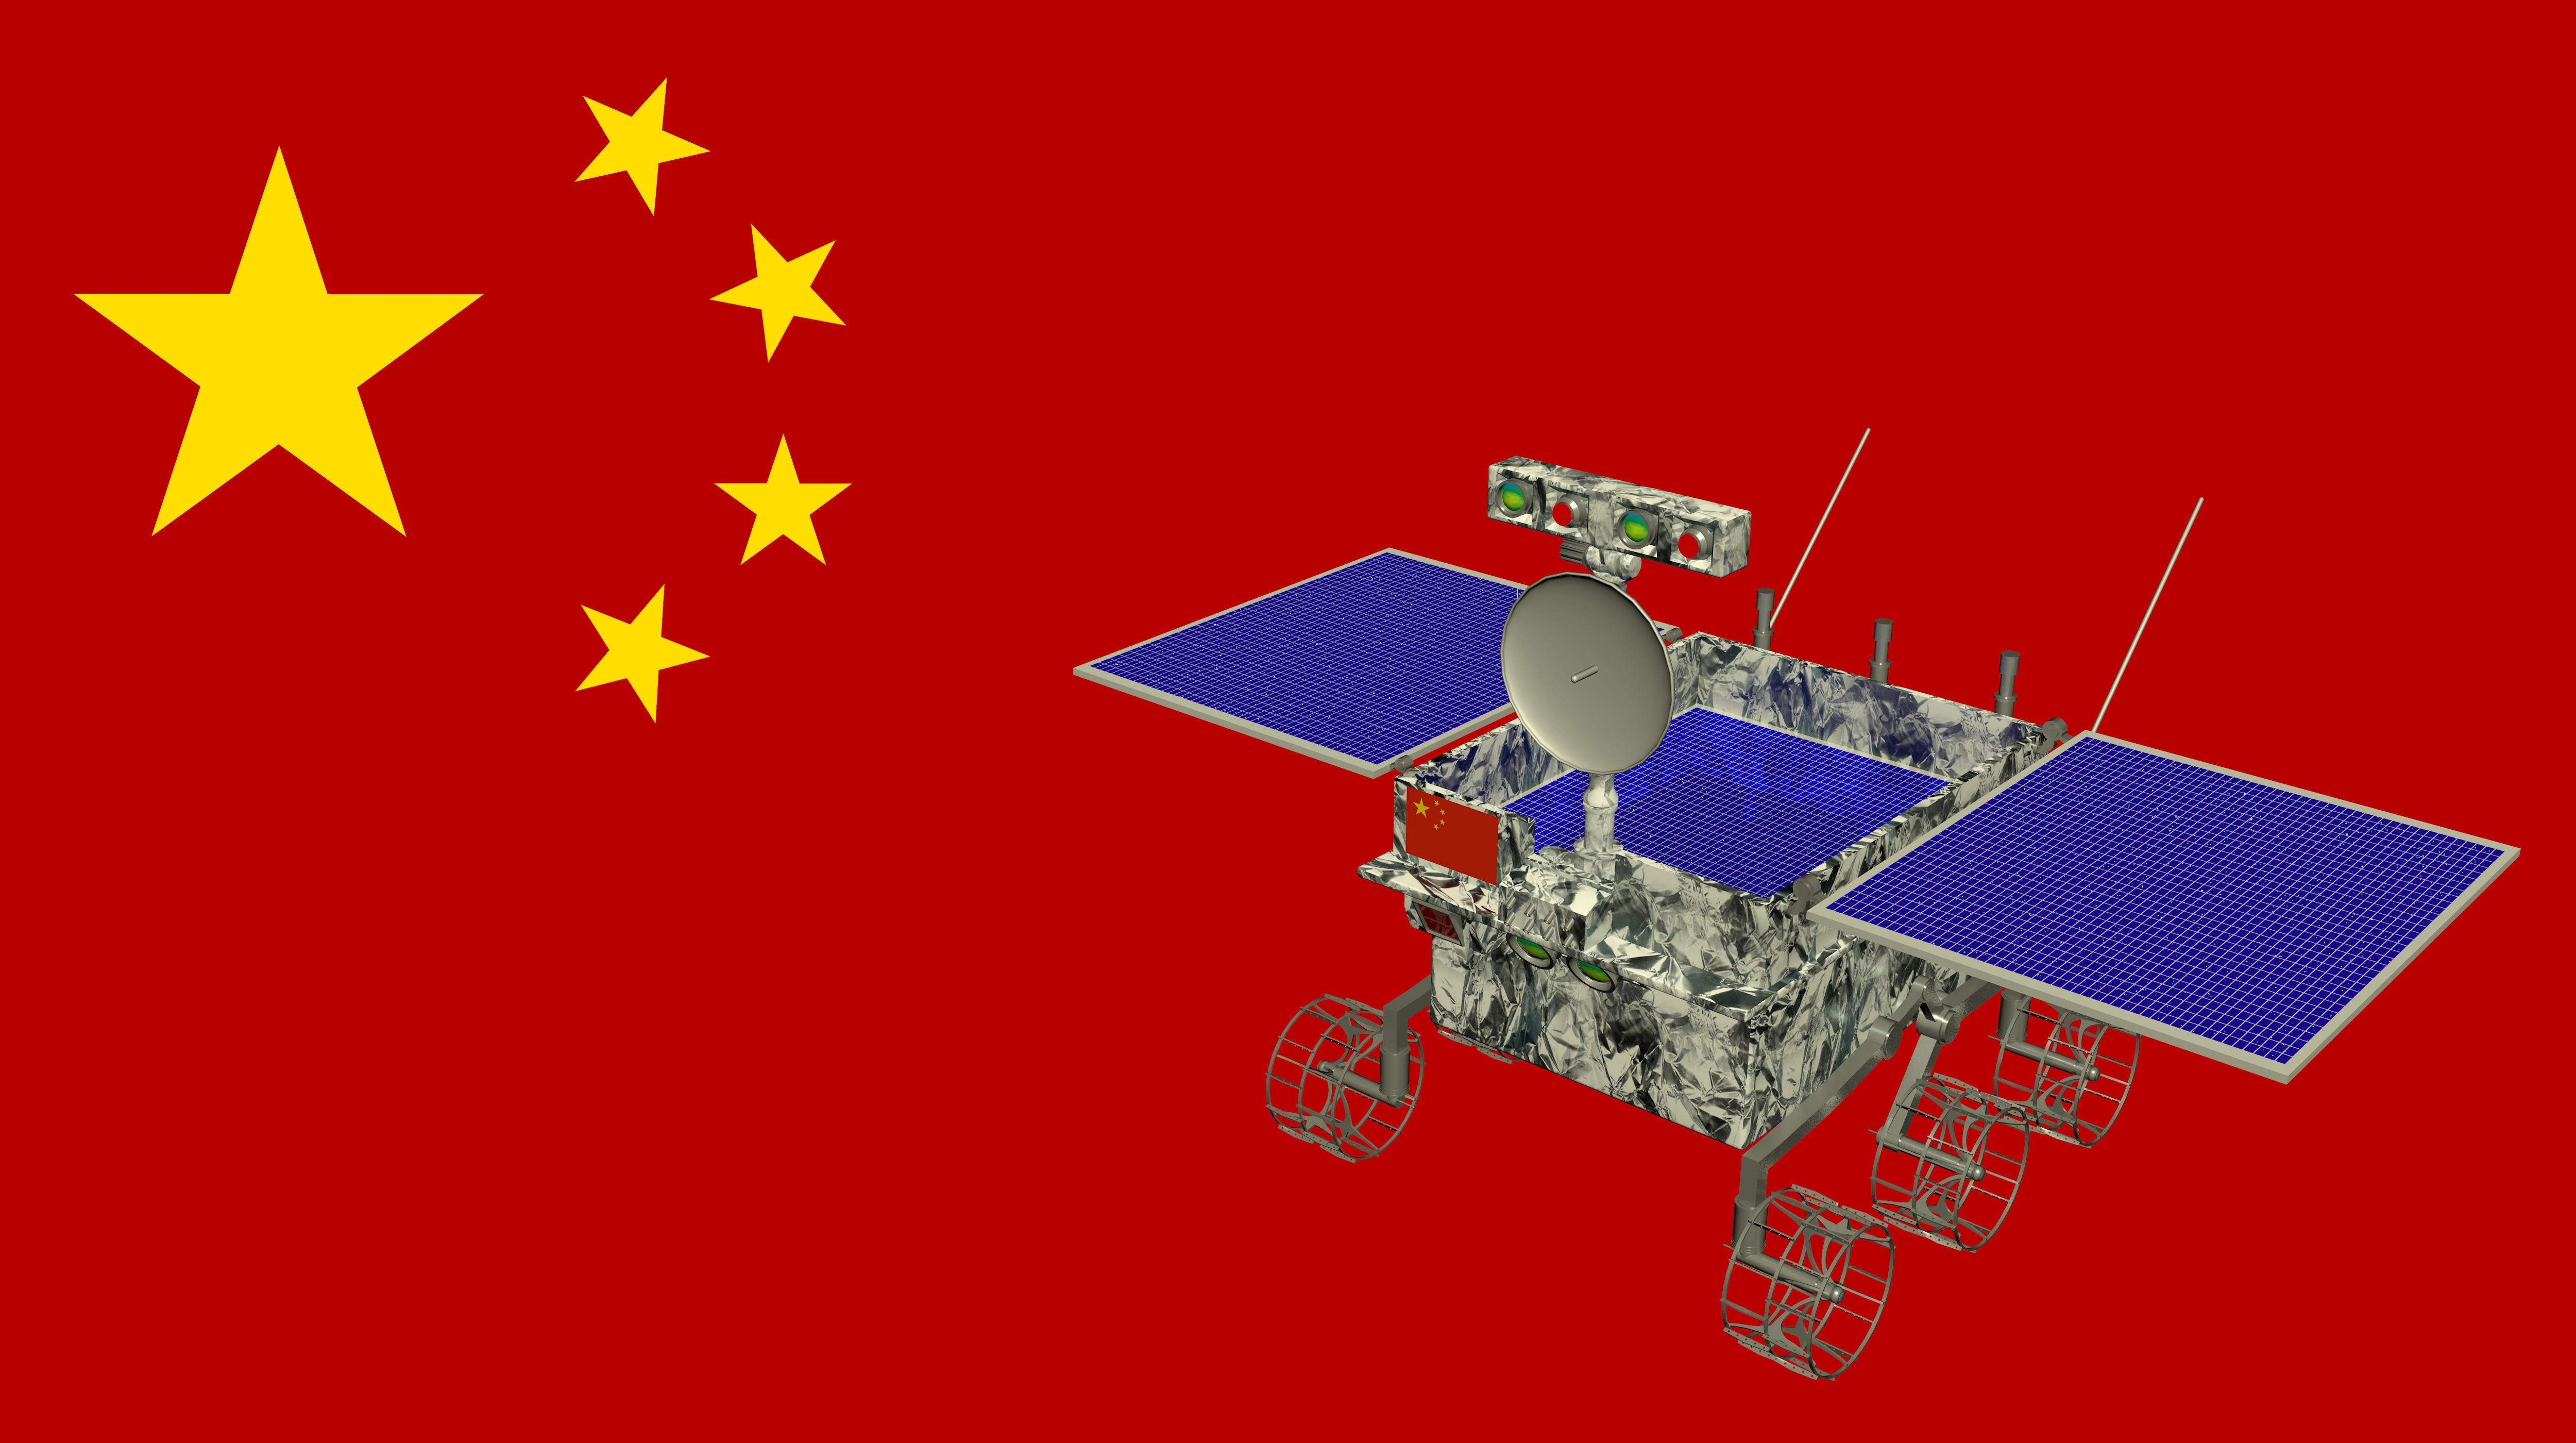 china-sonda-espacial.jpg